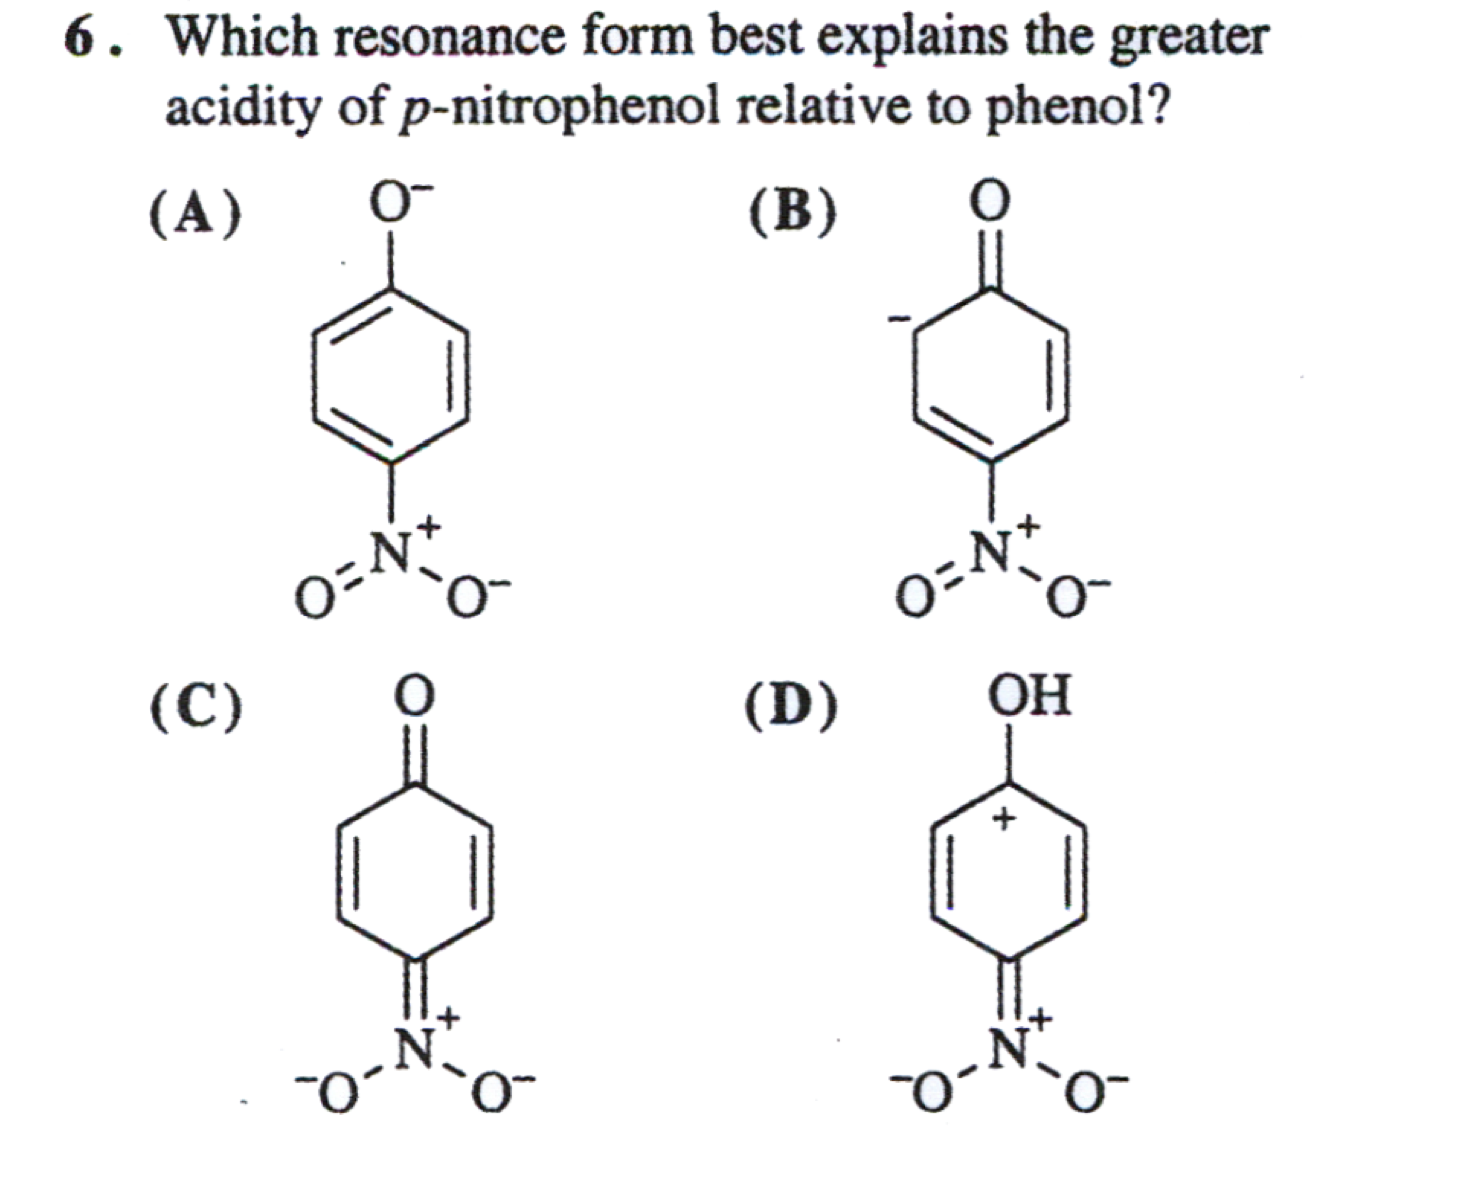 organic chemistry which resonance form best expl com 6 which resonance form best explains the greater acidity of p nitrophenol relative to